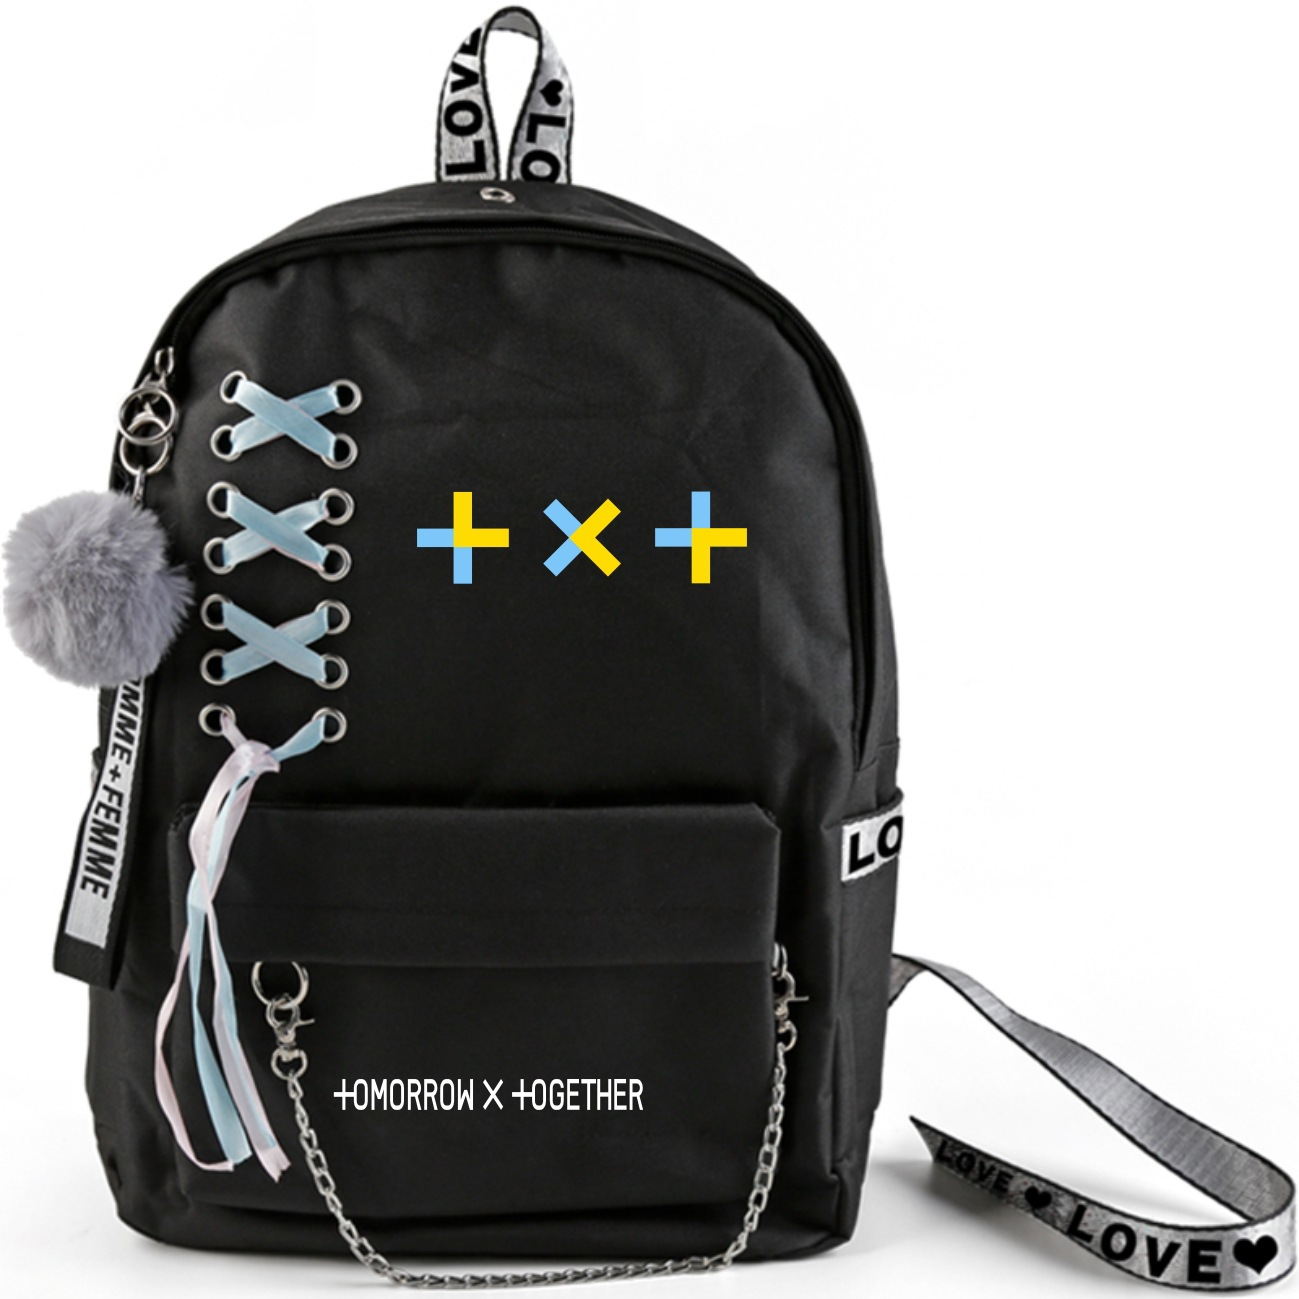 Kpop TXT Backpack Large Capacity School Bag With Crossed Ribbon Plush Ball Pendant Tomorrow X Together Travel Bag Fan Collection